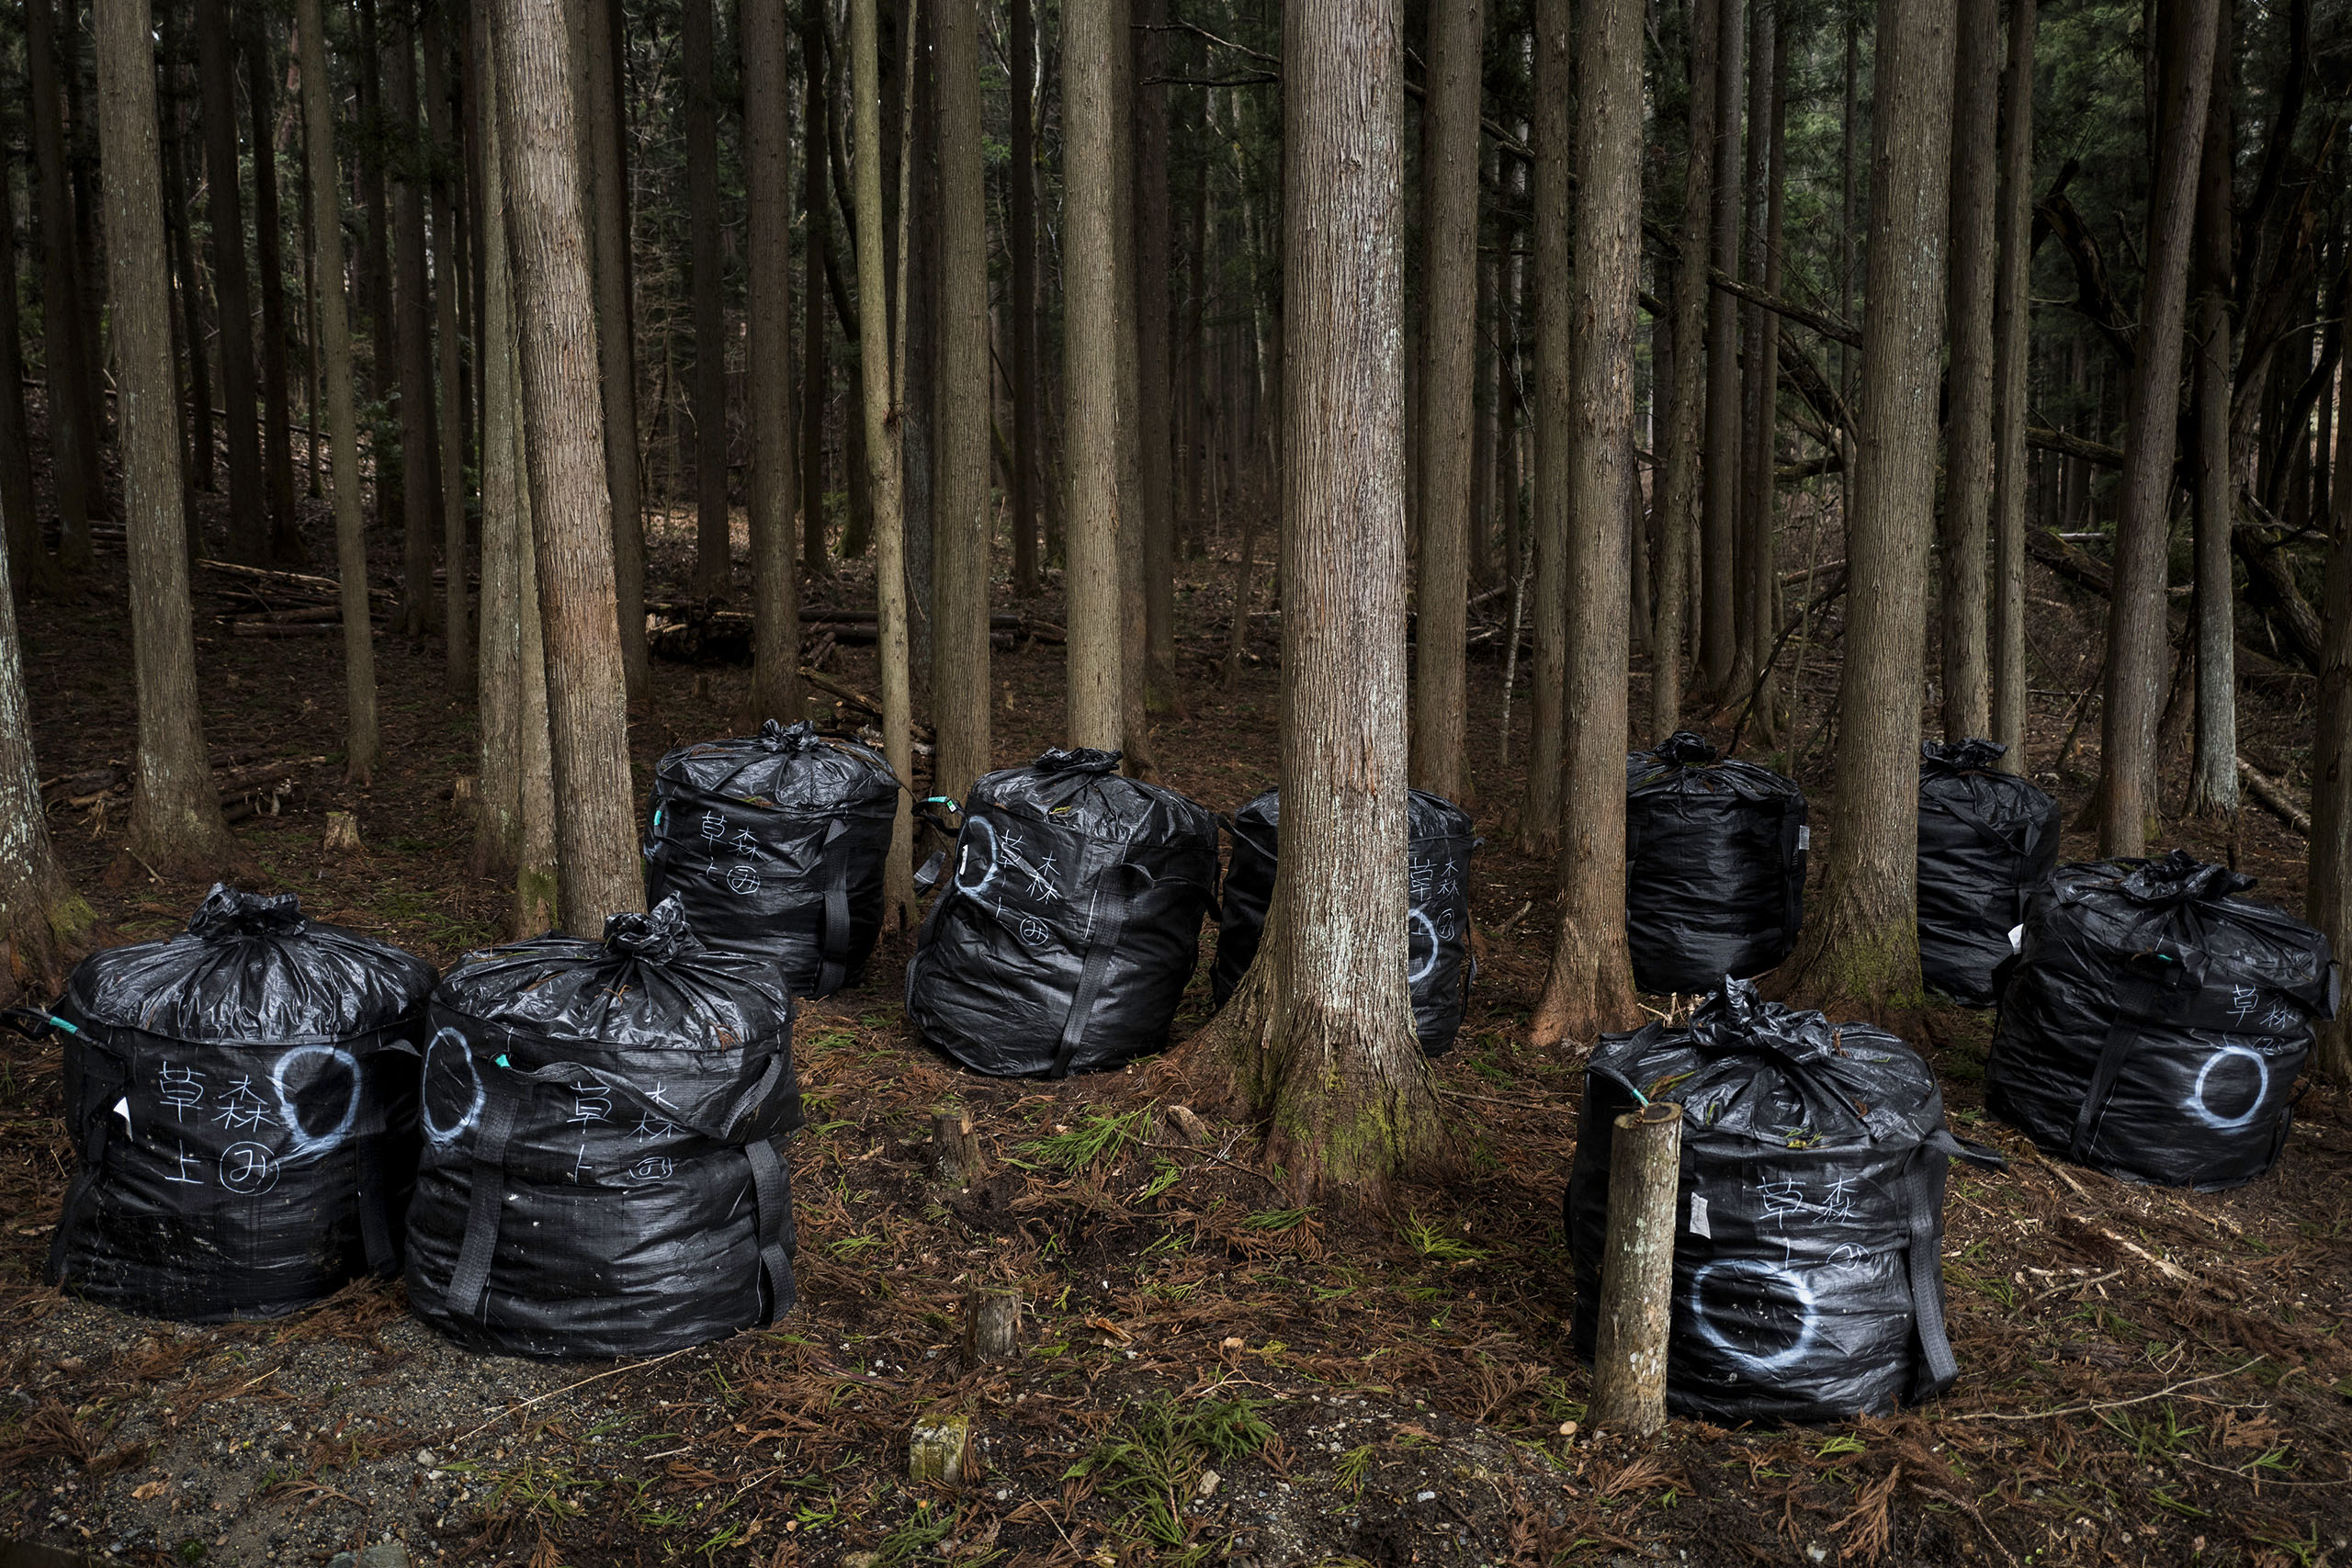 Decontamination bags are seen in the woods of Itate, Fukushima, Japan, March 7, 2016.